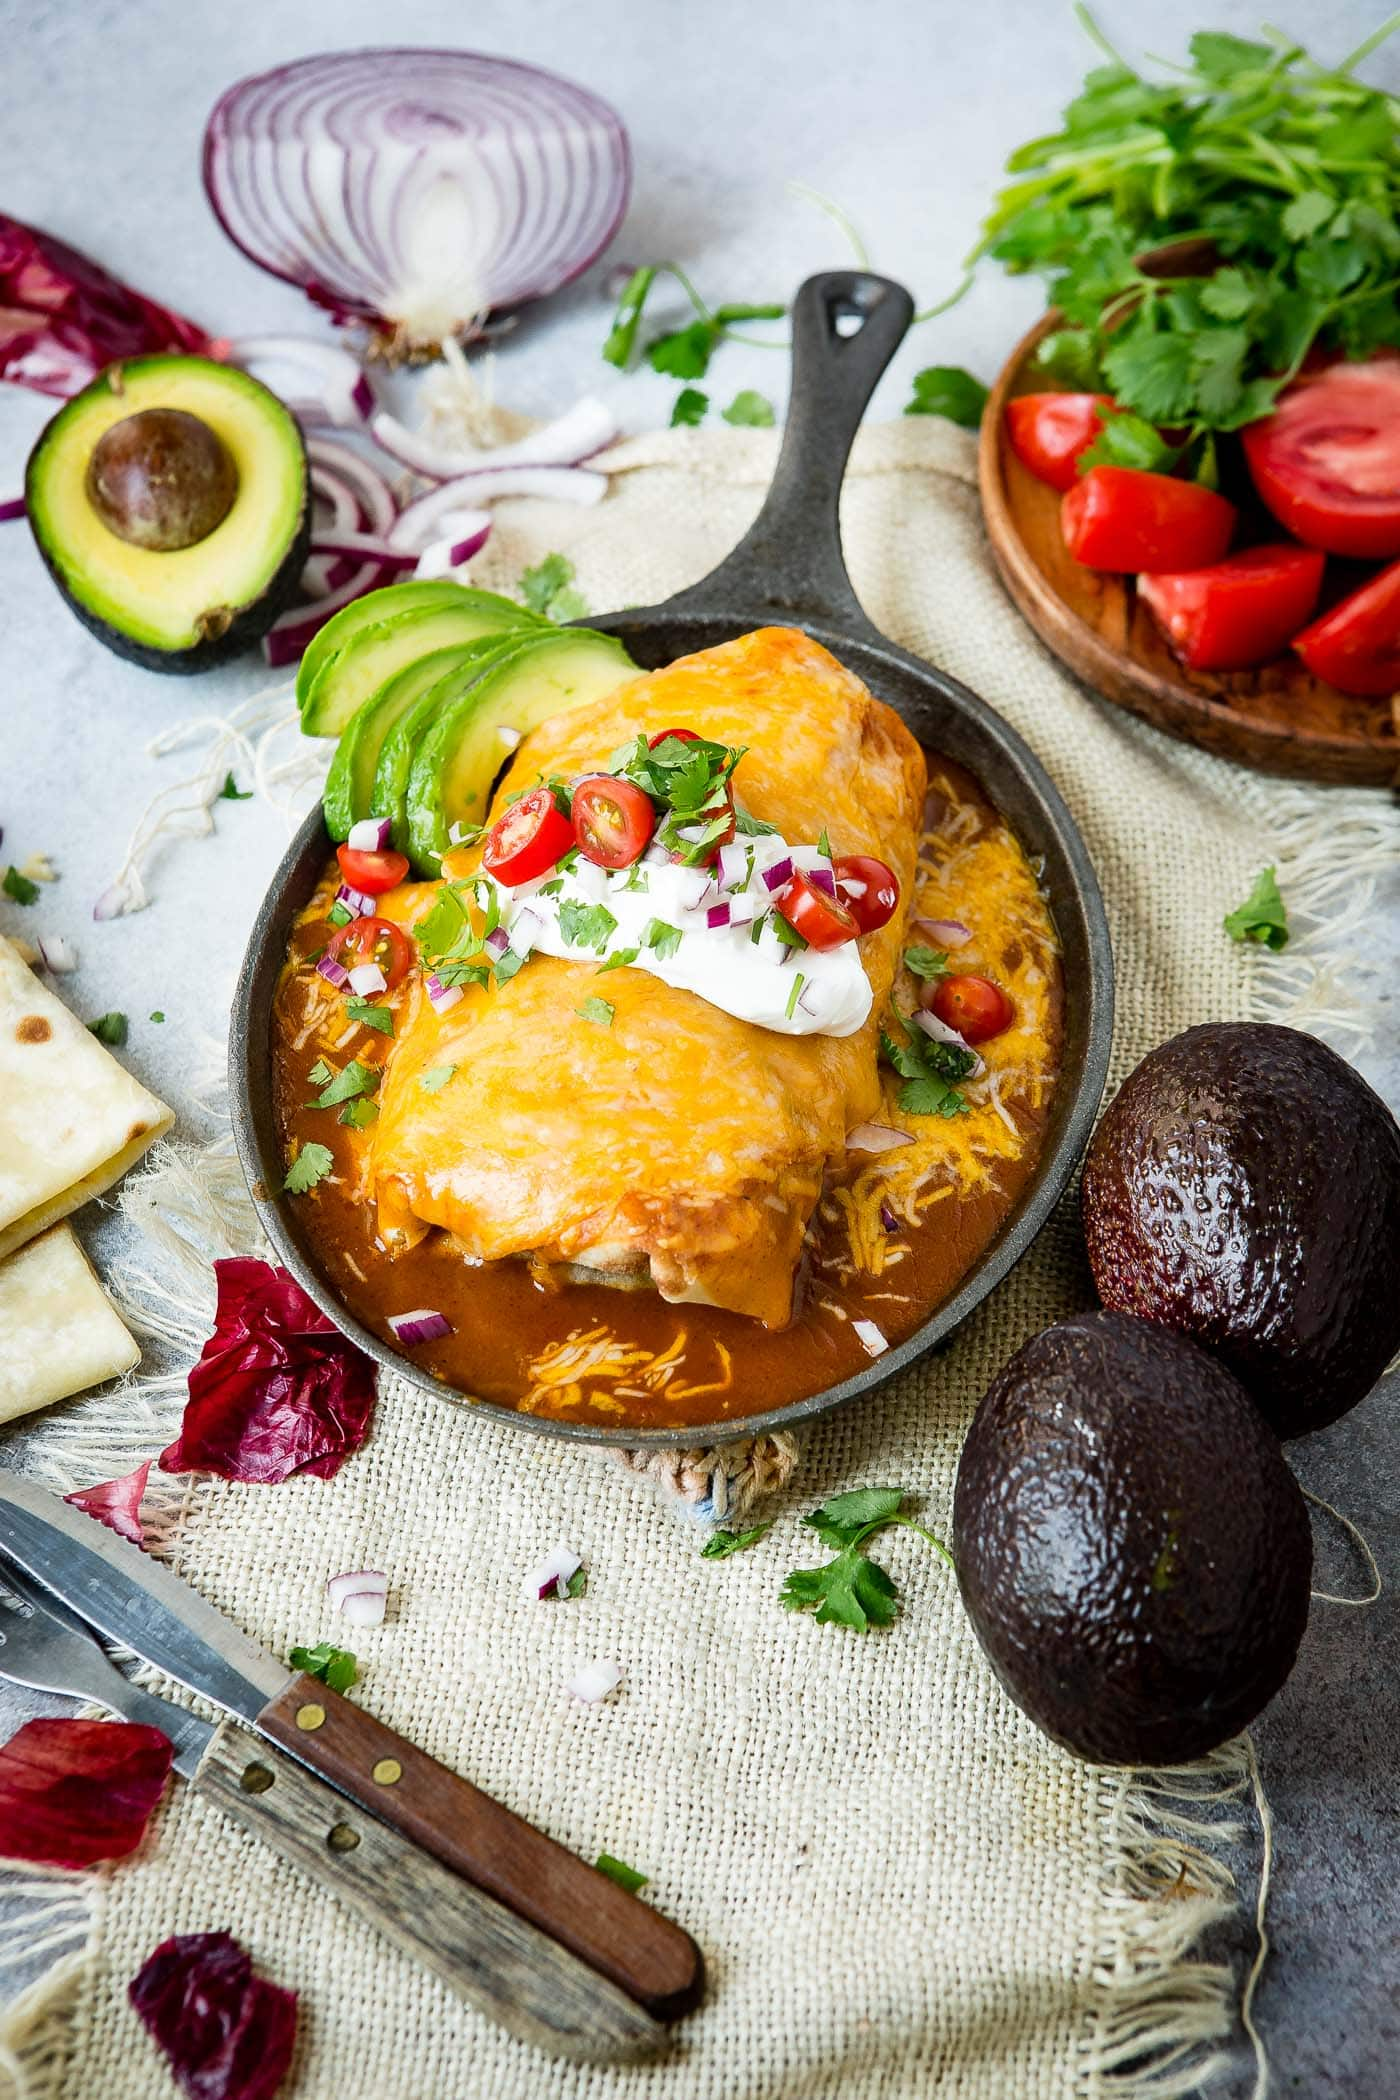 a photo of a large burrito in a cast iron skillet topped with a sauce and melted cheese and garnished with sour cream, diced red onions, chopped cilantro and sliced grape tomatoes with some avocado slices on the side. All the ingredients are scattered around the cast iron skillet.